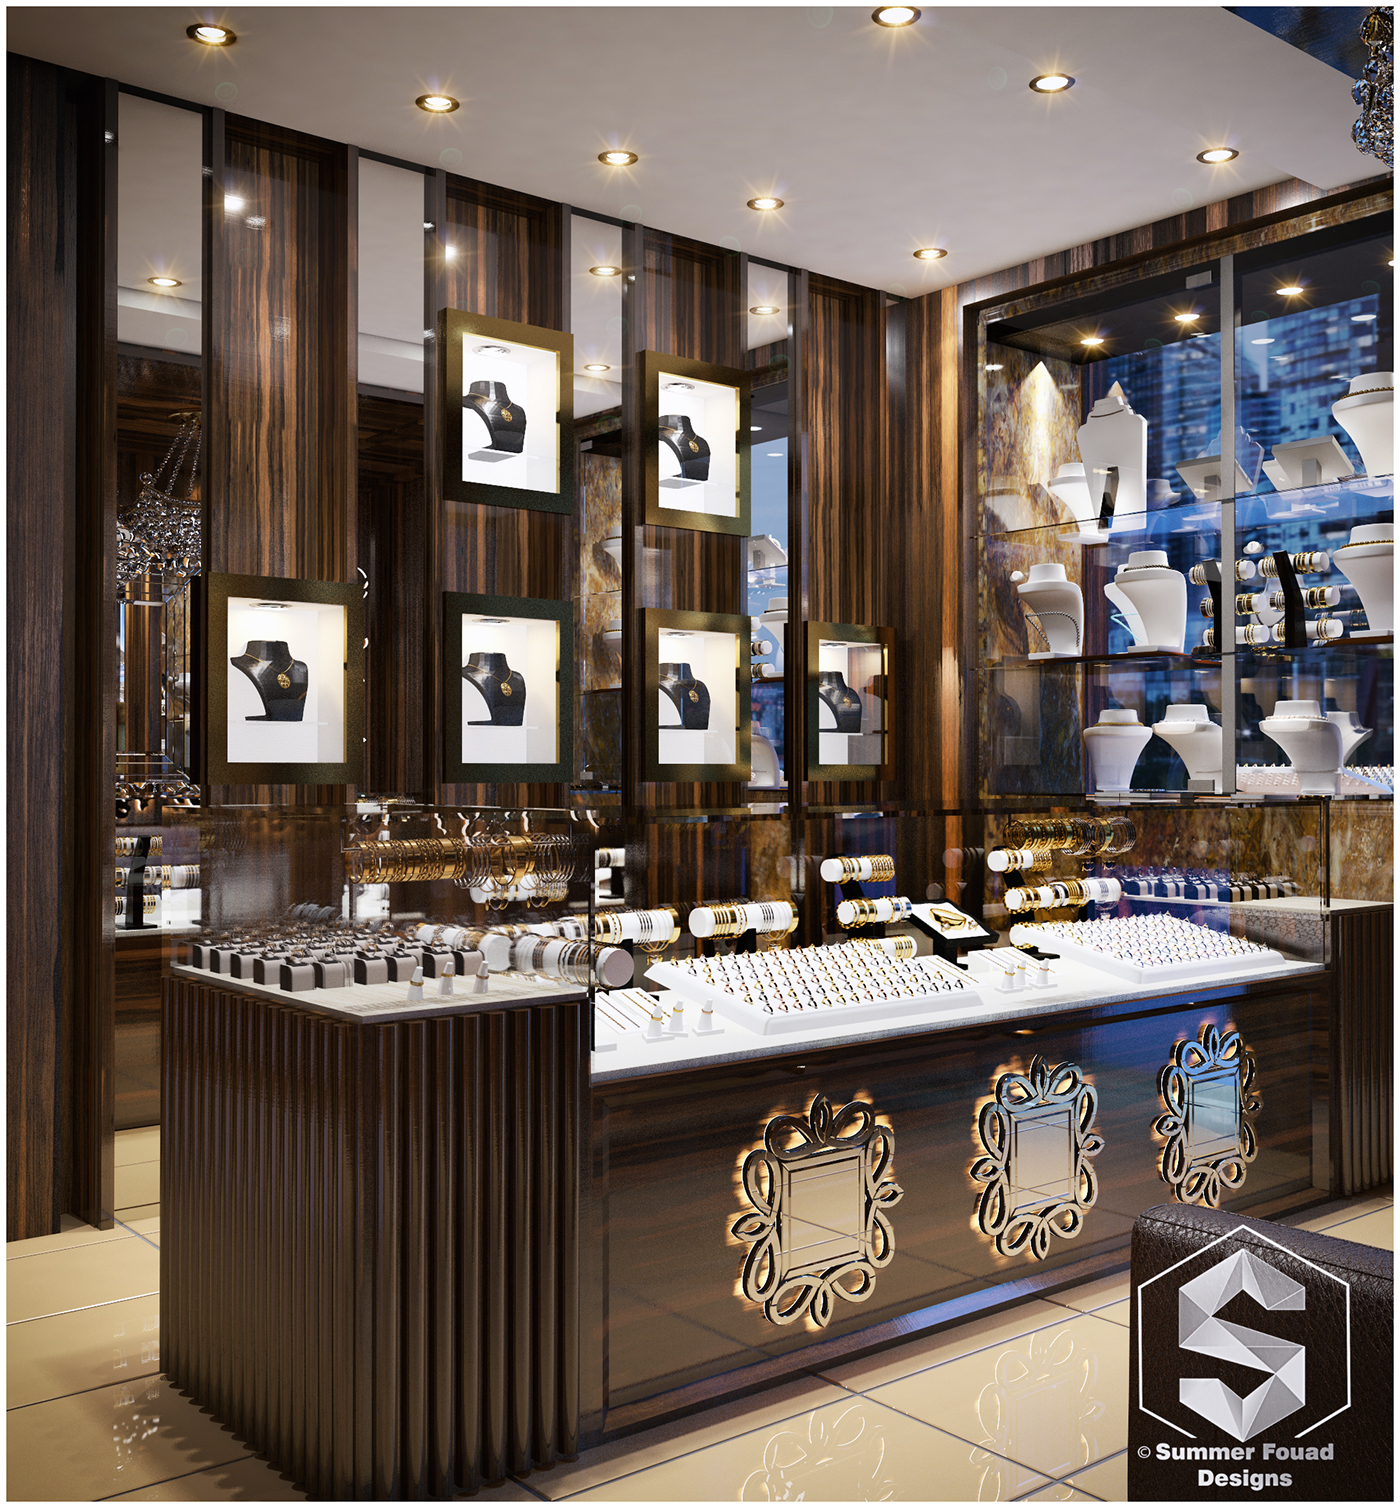 Interior Decor Stores: Jewelry Store Interior Design On Behance